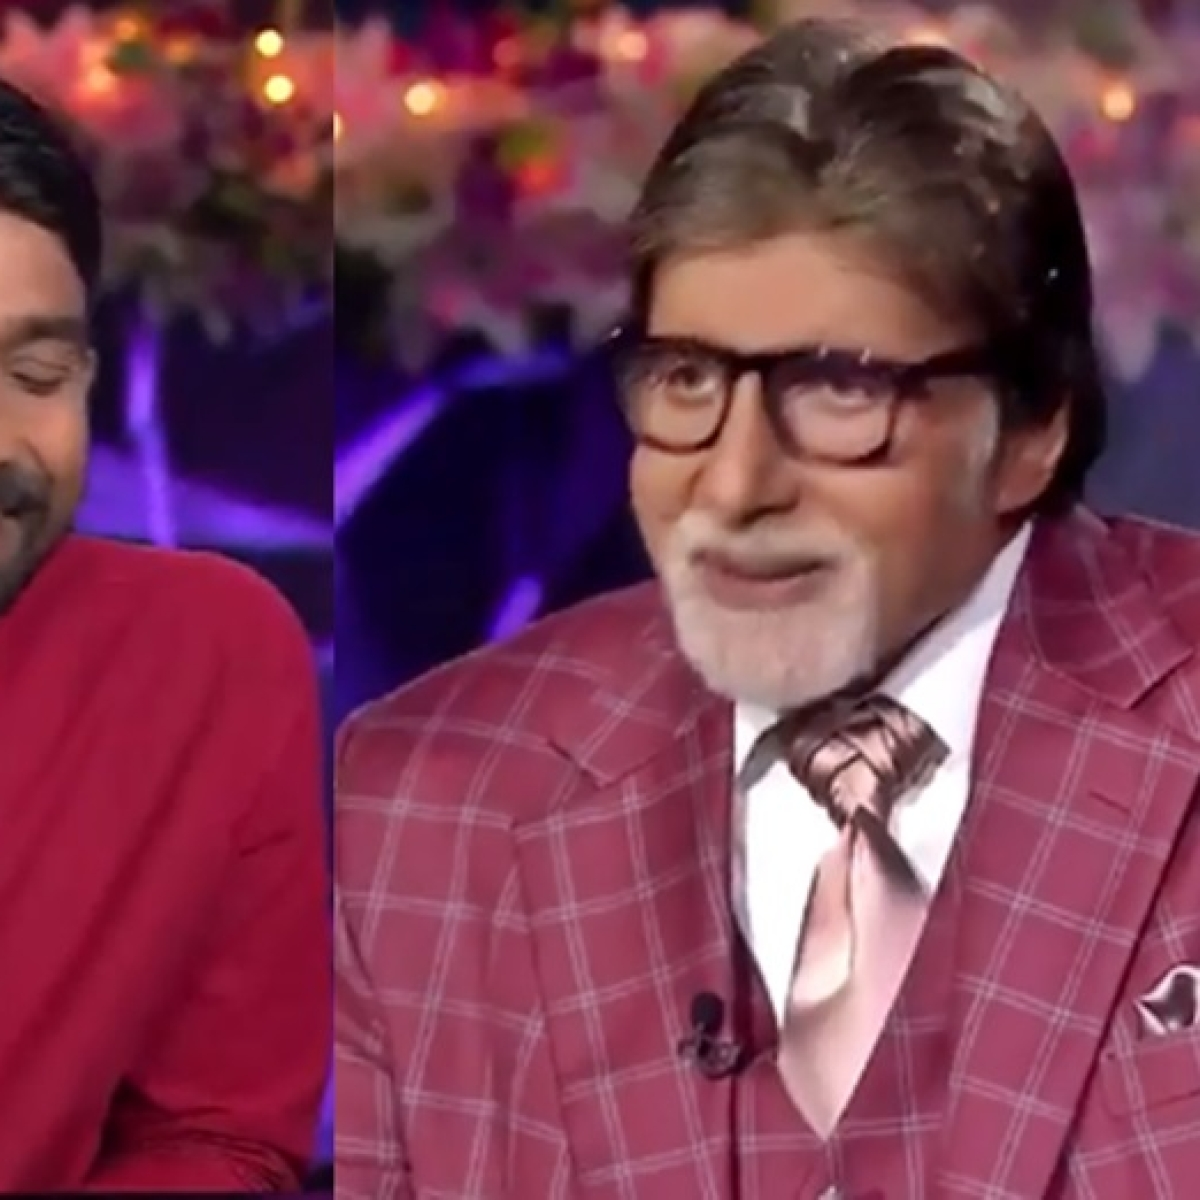 Wanted to buy mangalsutra for wife: Amitabh Bachchan lauds KBC contestant who won Rs 25 Lakh